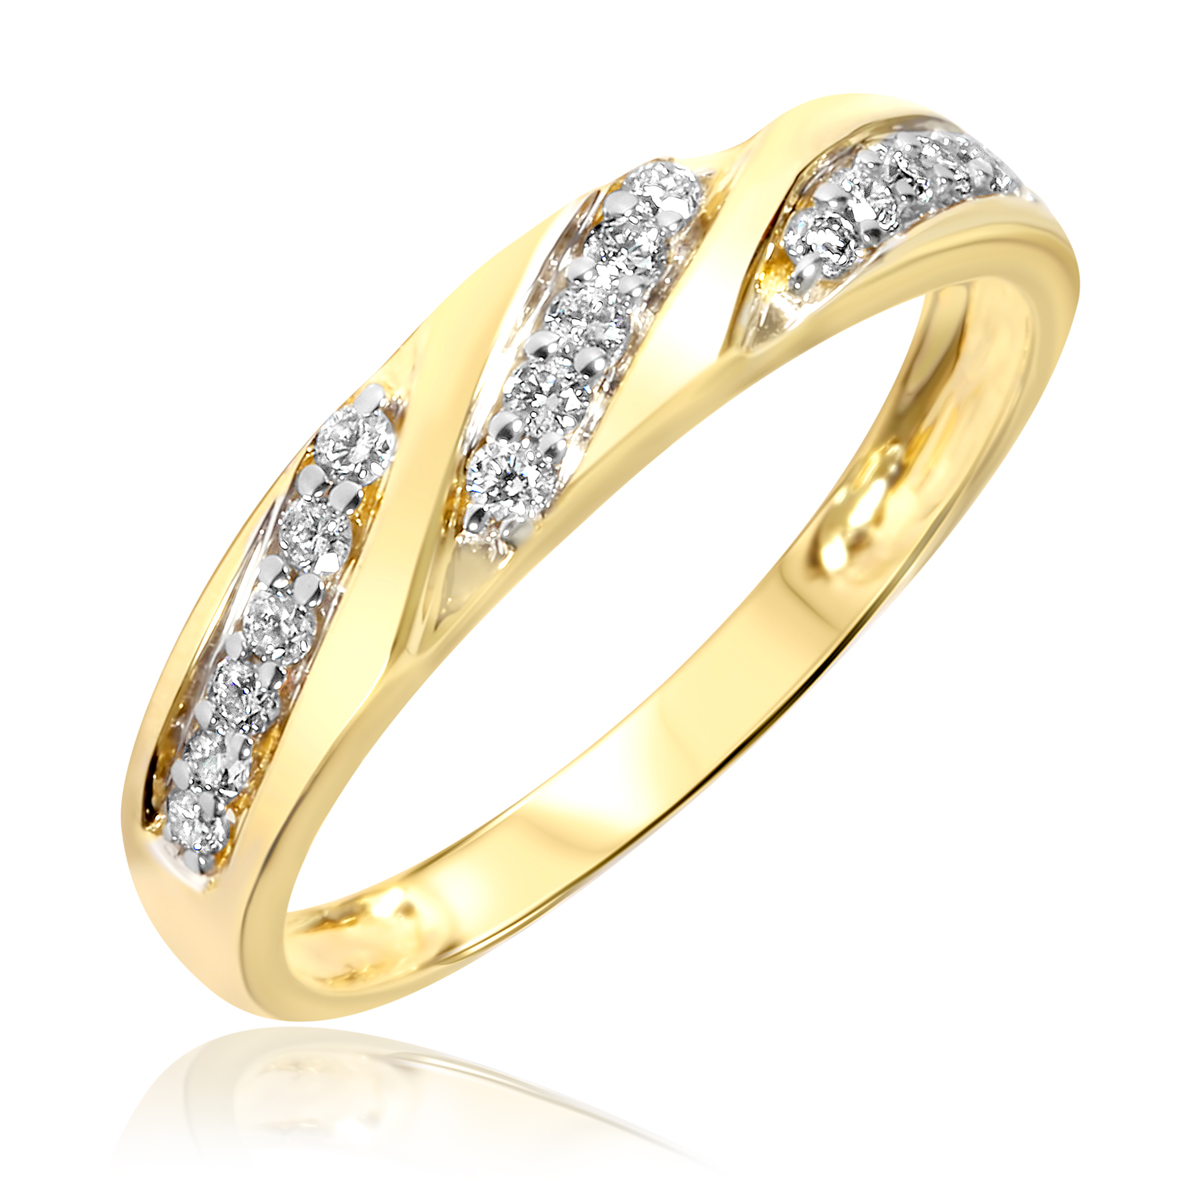 1 4 Carat T W Diamond Women s Wedding Ring 10K Yellow Gold